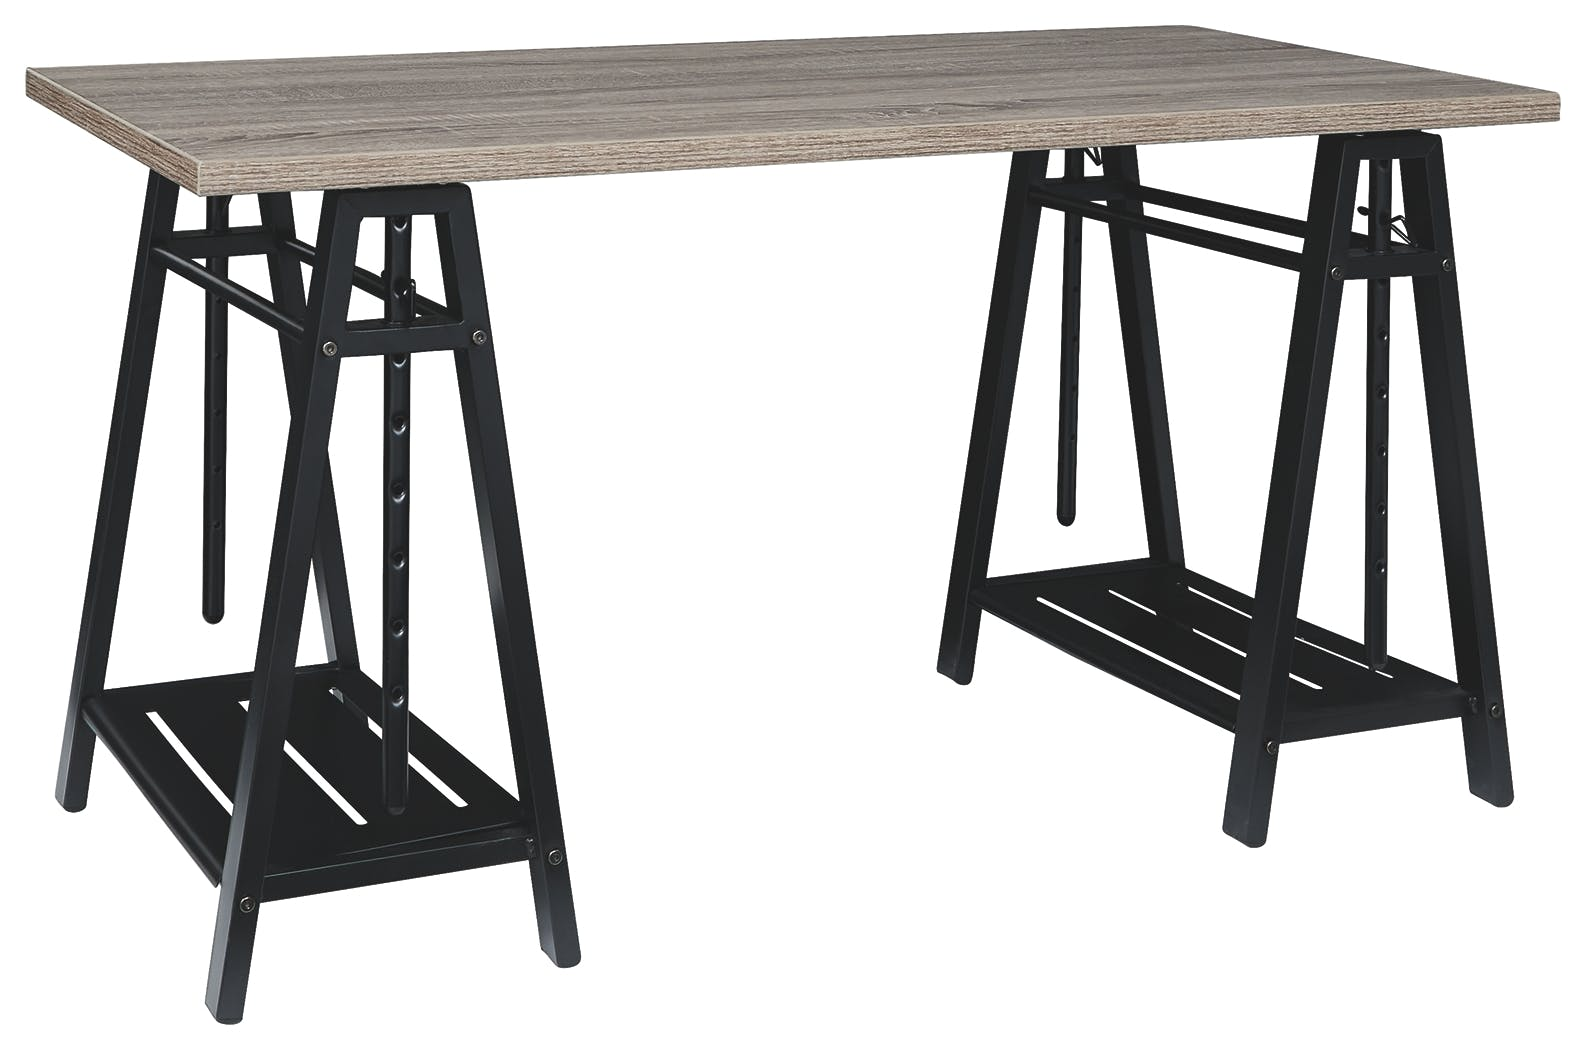 Picture of: Signature Design By Ashley Home Office Irene Adjustable Height Desk Z1430261 Turner Furniture